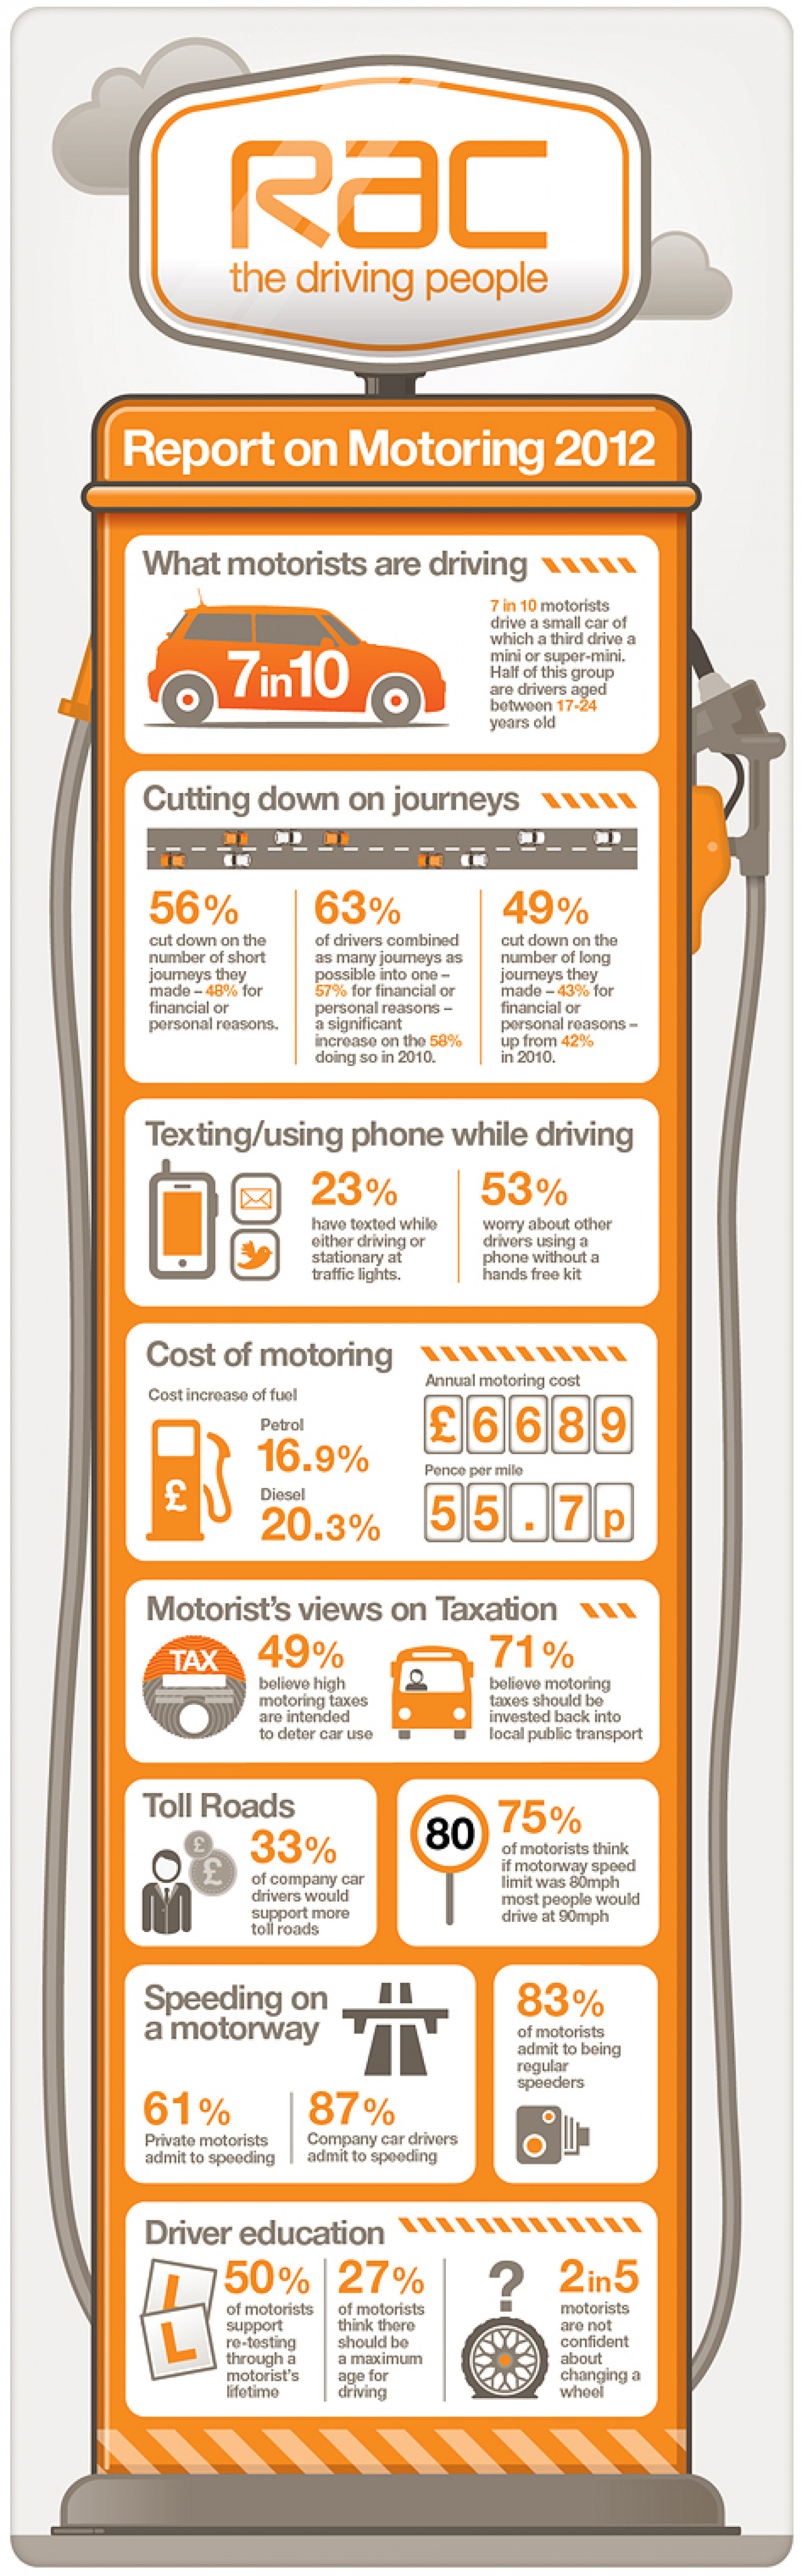 RAC Report on Motoring 2012 Infographic